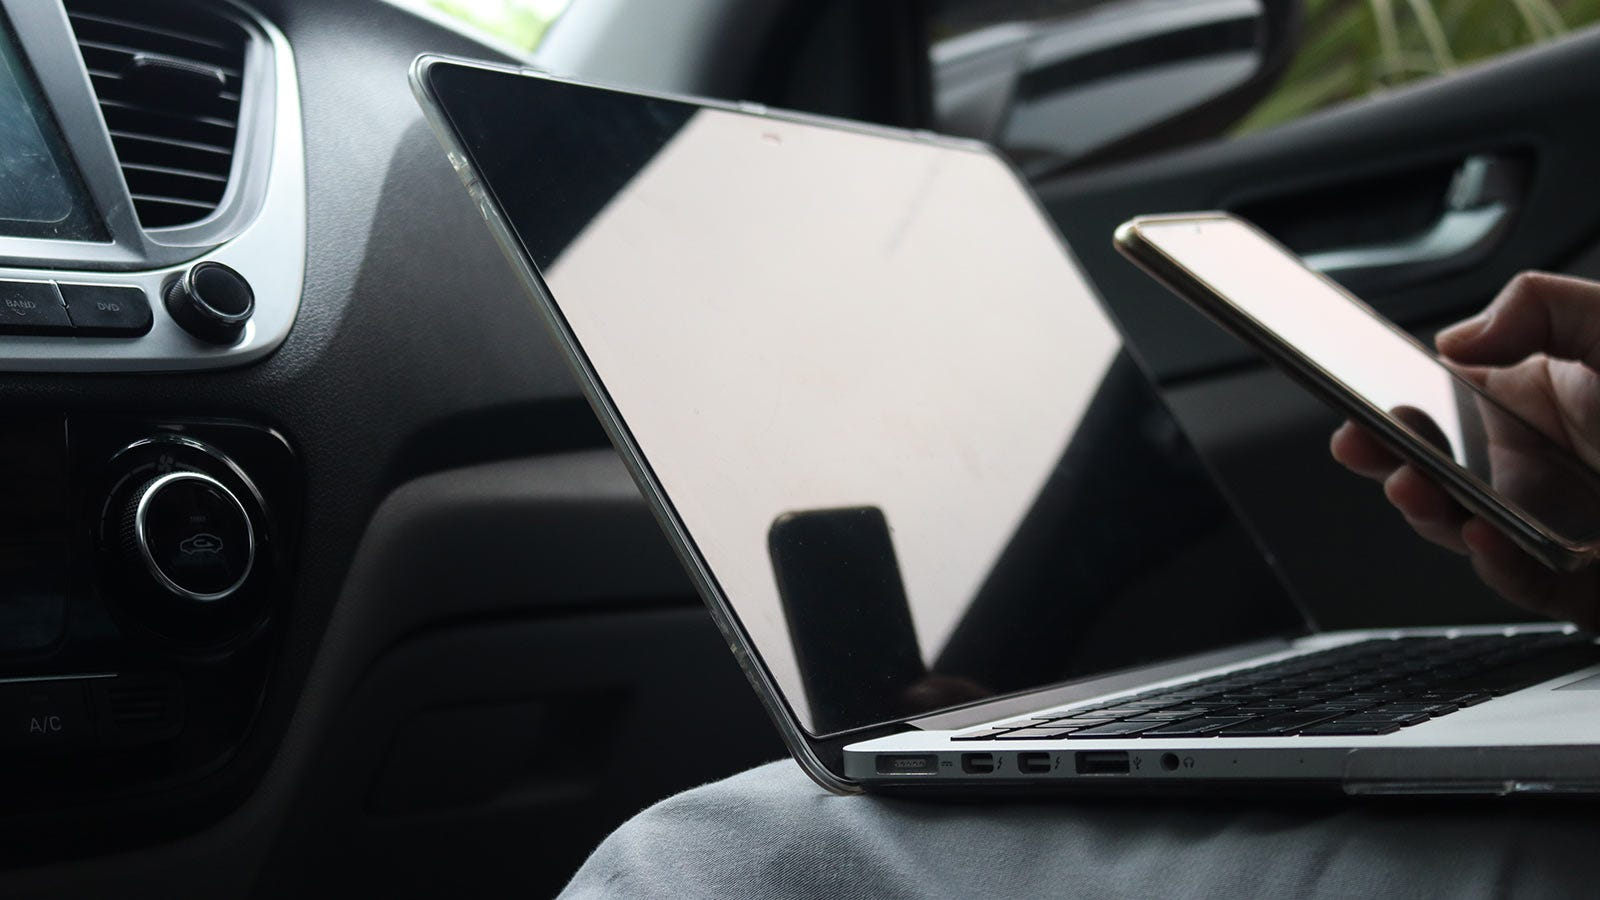 Someone working on a laptop and holding a smartphone in a car.